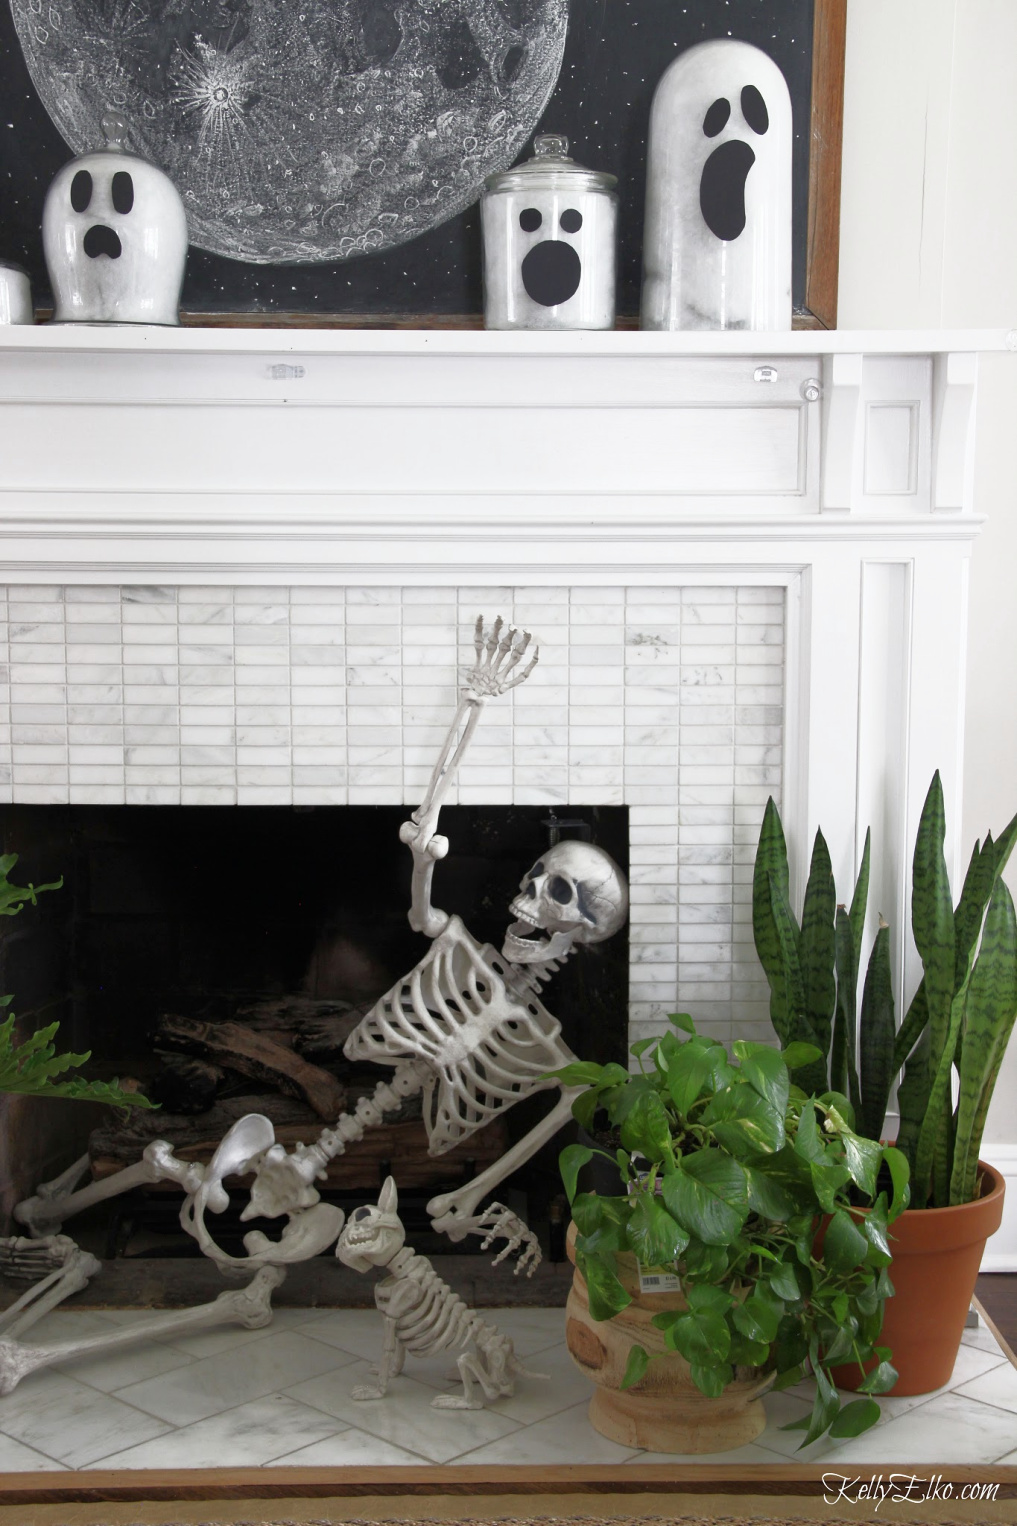 Love this Halloween mantel with the skeleton in the fireplace and she shows how to make glass jar ghosts! - kellyelko.com #halloween #halloweencrafts #halloweendecor #halloweendecorations #diyhalloween #diyhalloweendecorations #ghosts #skeleton #halloweenhouse #halloweenmantel #vintagehalloween